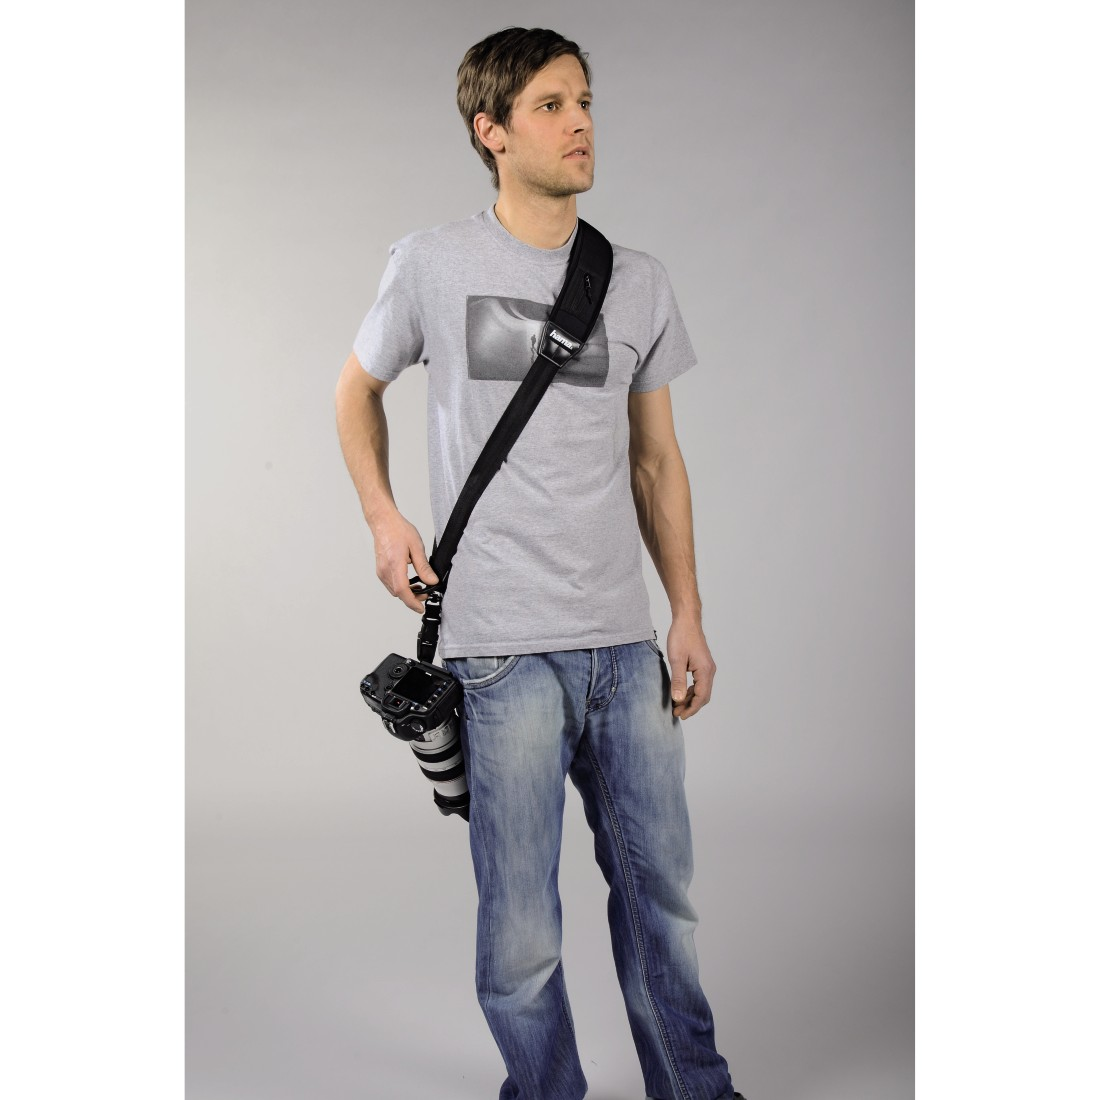 "awx2 High-Res Appliance 2 - Hama, Draagriem ""Quick Shoot Strap"" voor SLR-camera's"